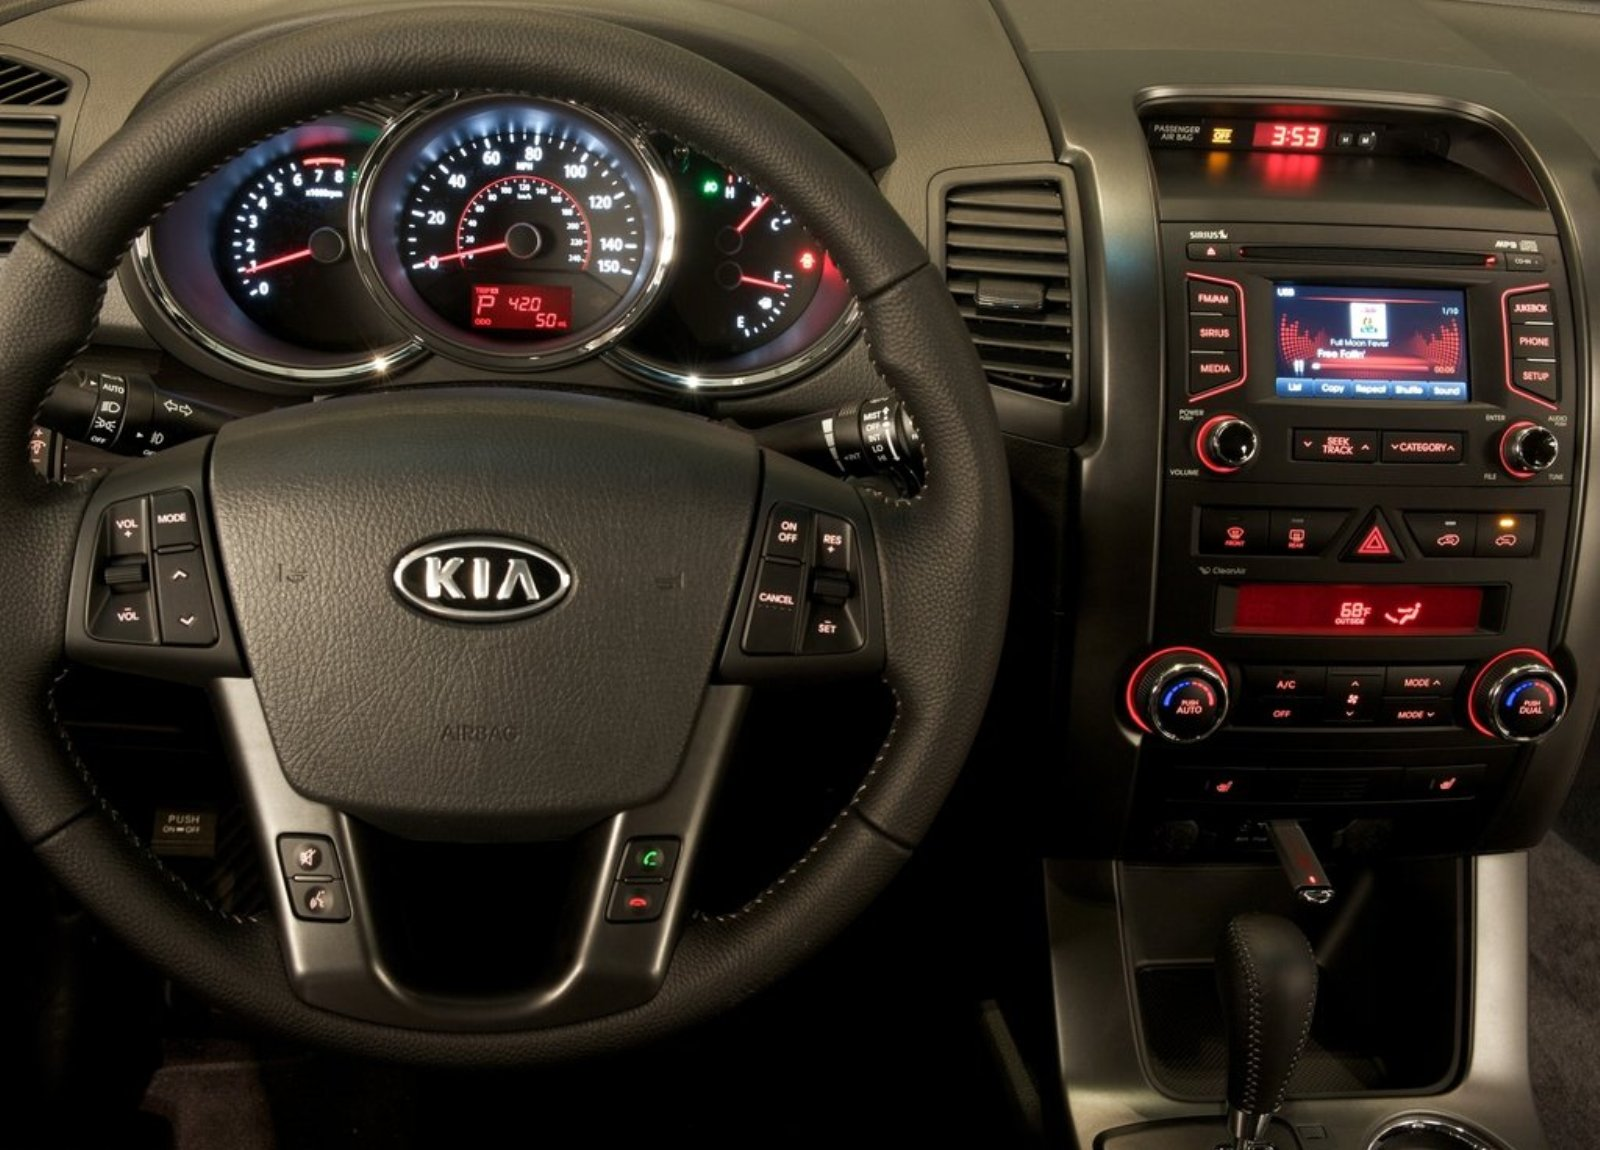 2013 Kia Sorento Radio Audio Wiring Diagram Schematic Colors Car Diagrams